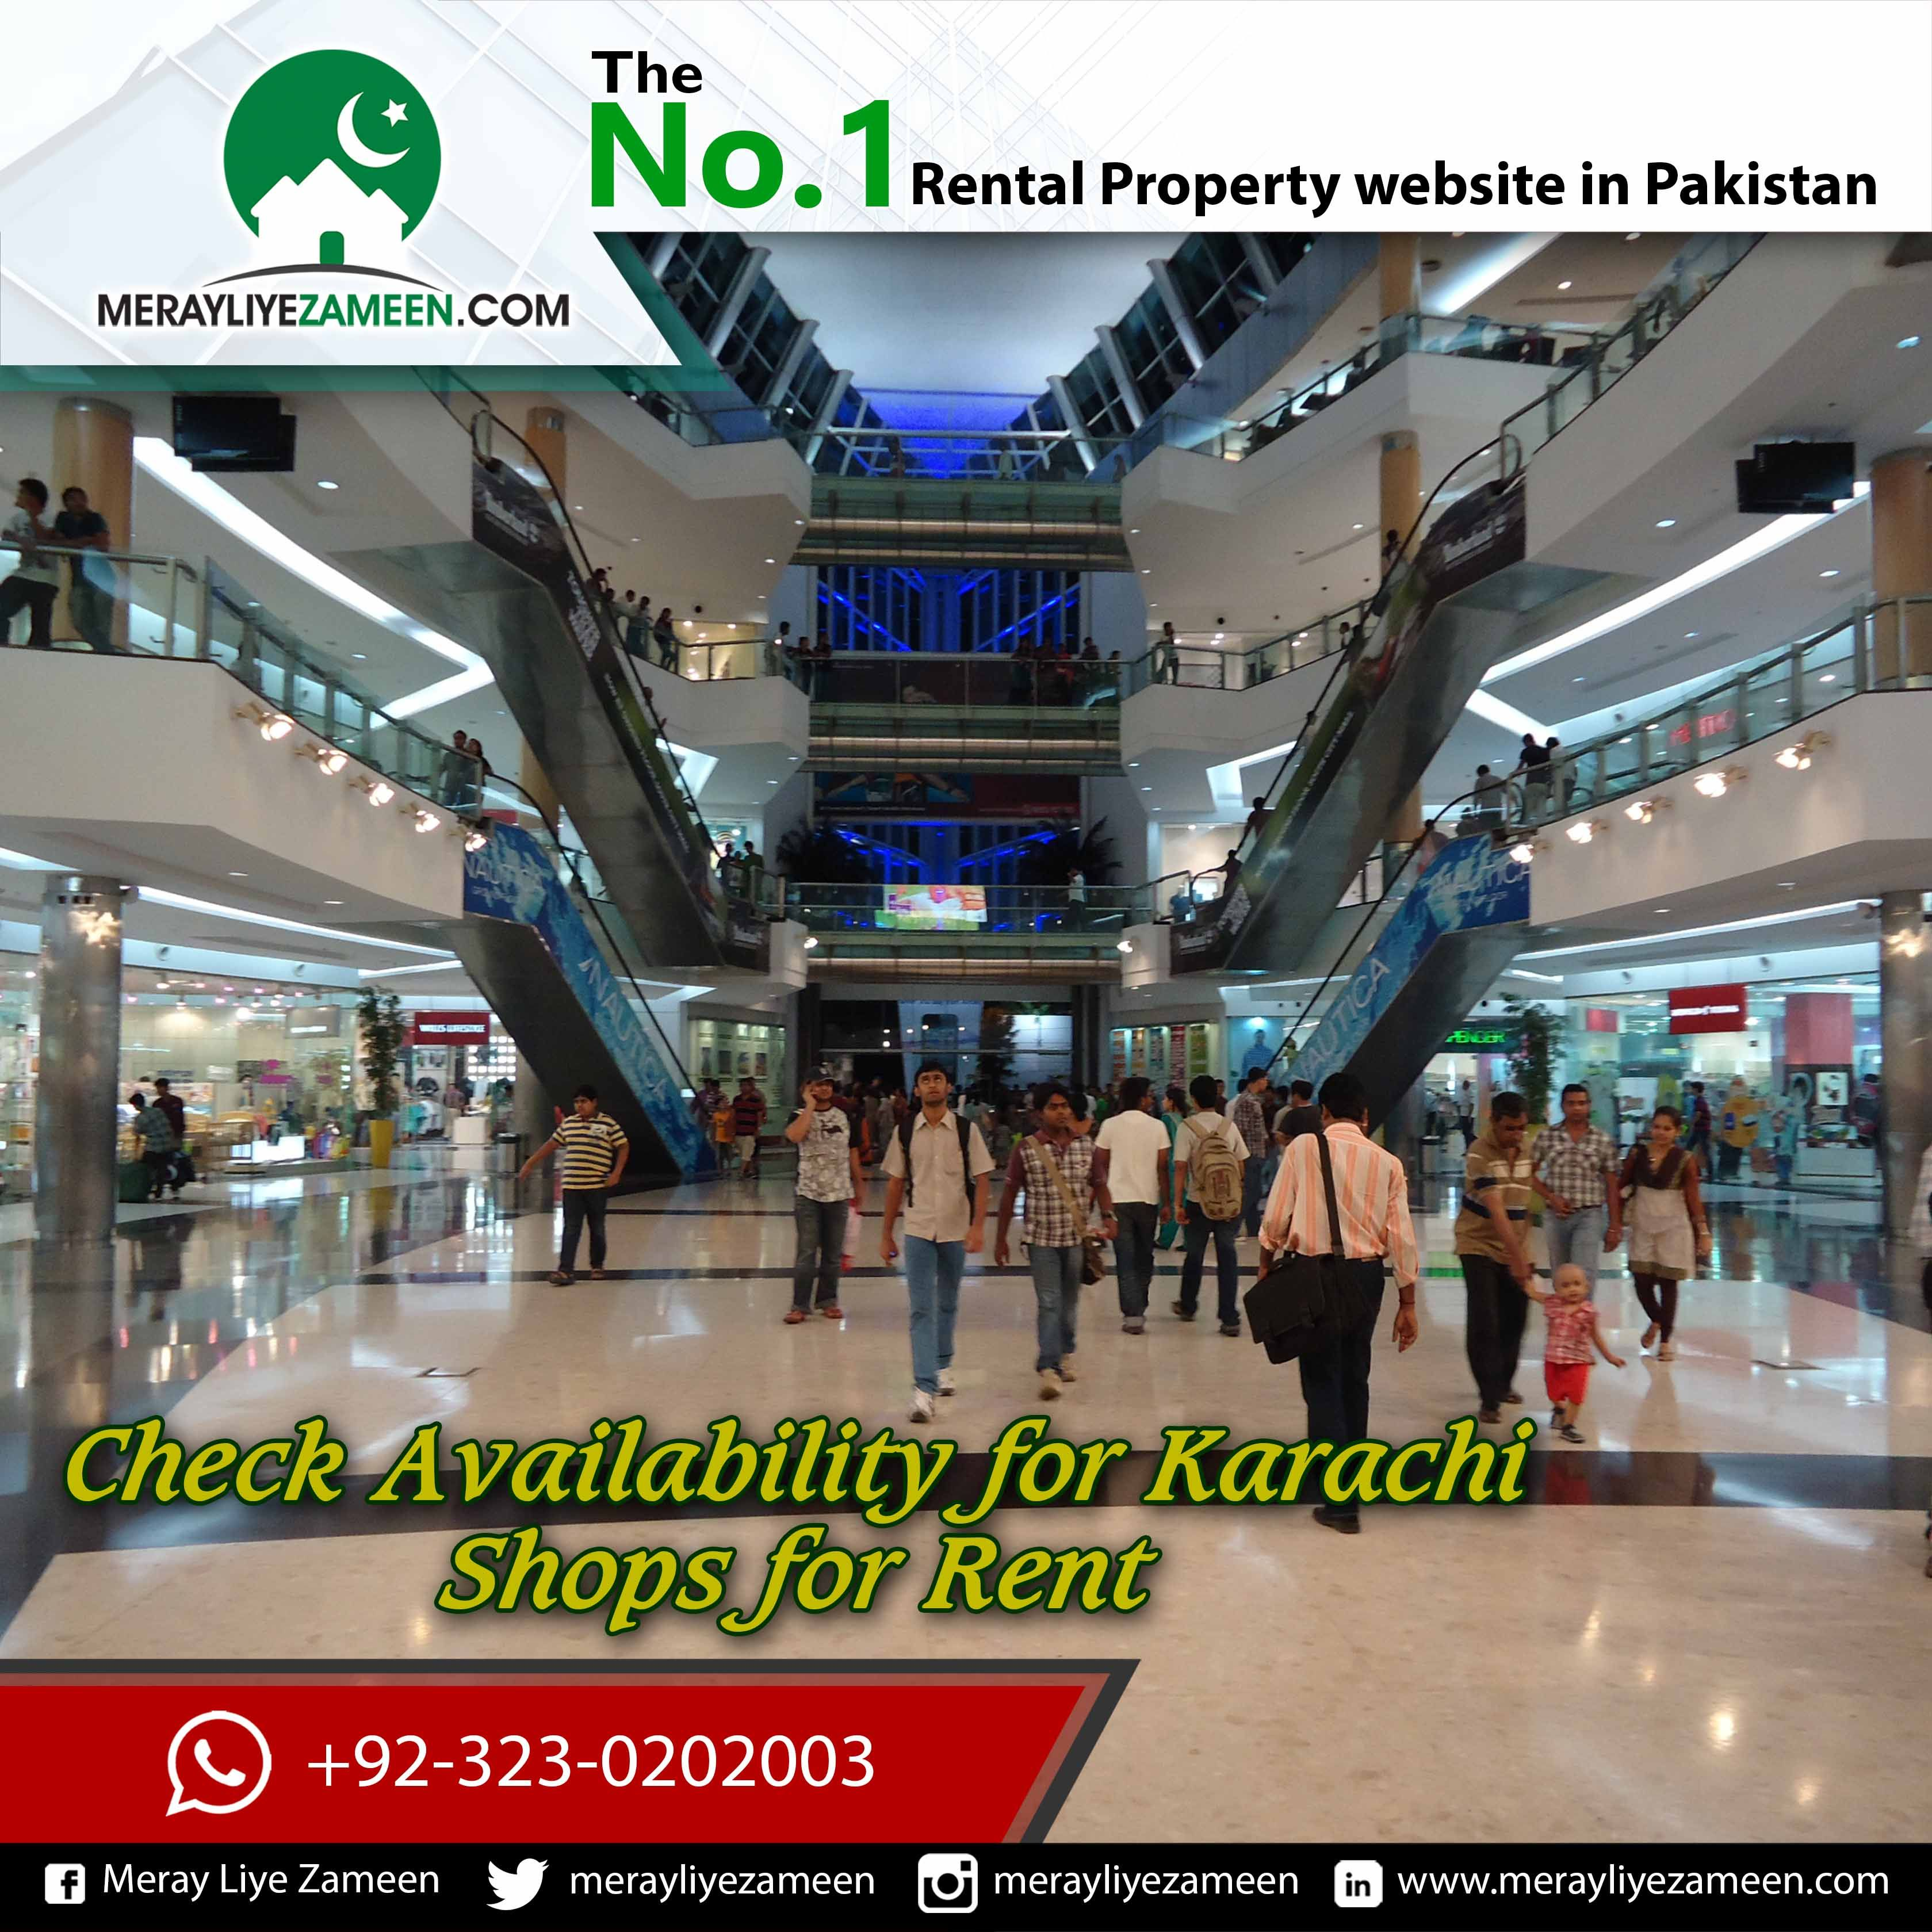 Check Availability For #Karachi #Malls #Shop For Rent